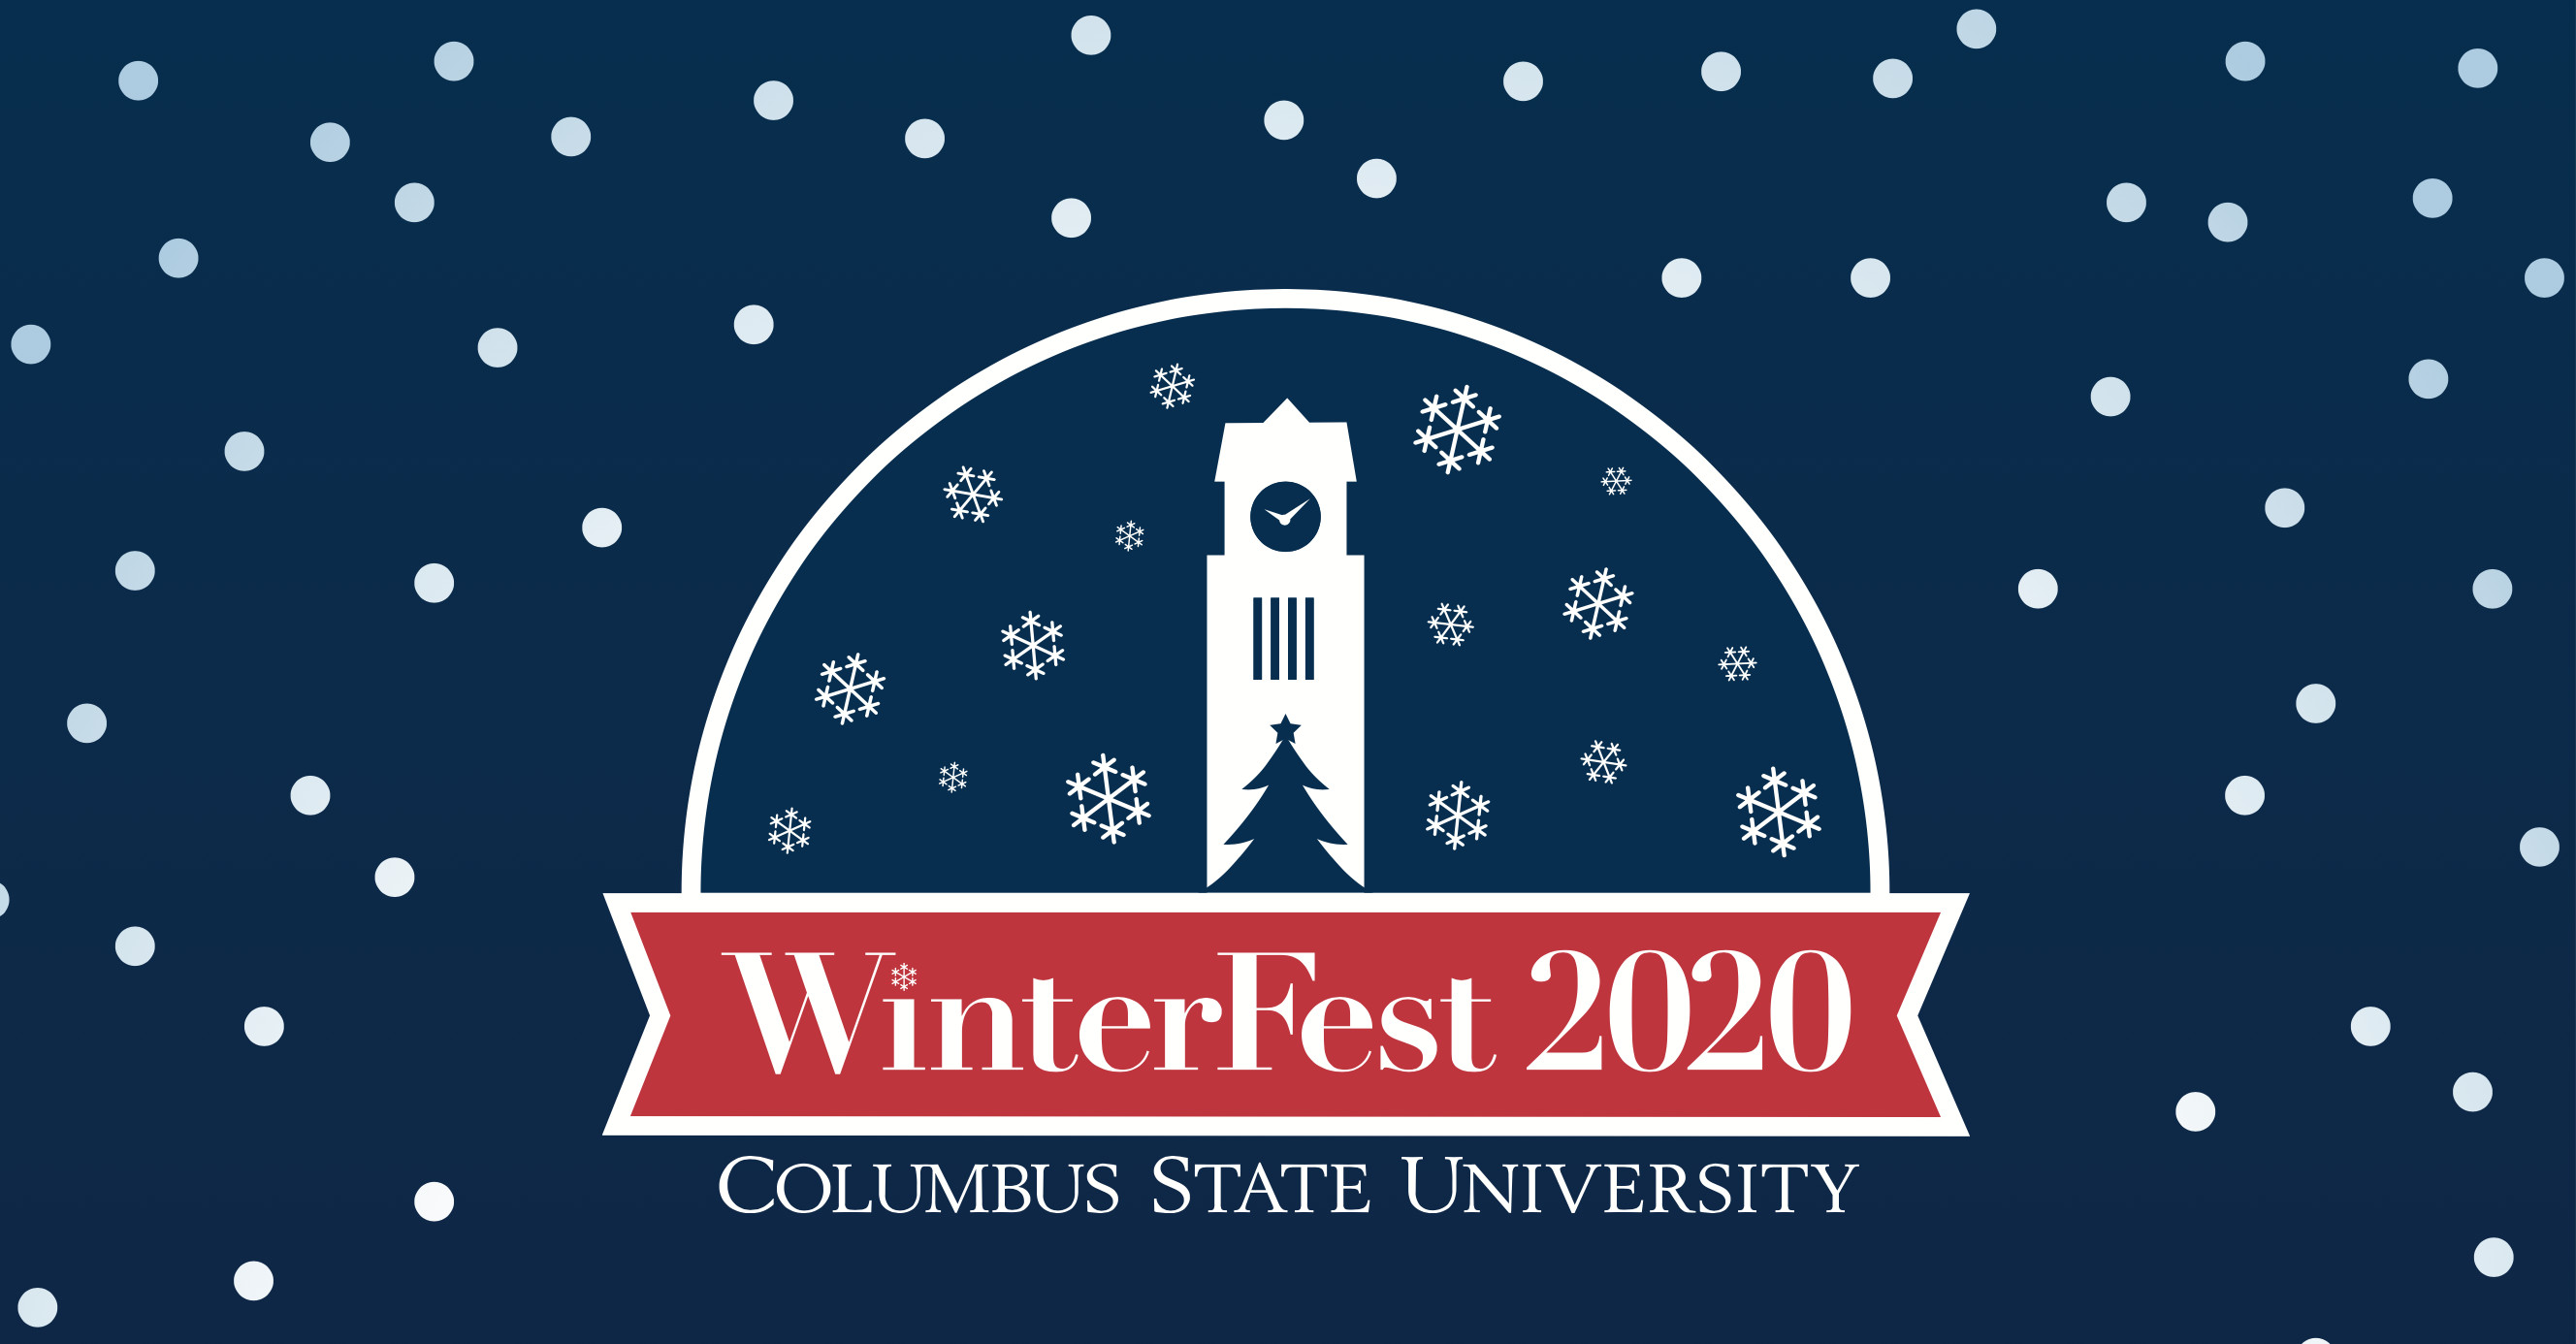 WinterFest 2020 Drive-Through Light Tour